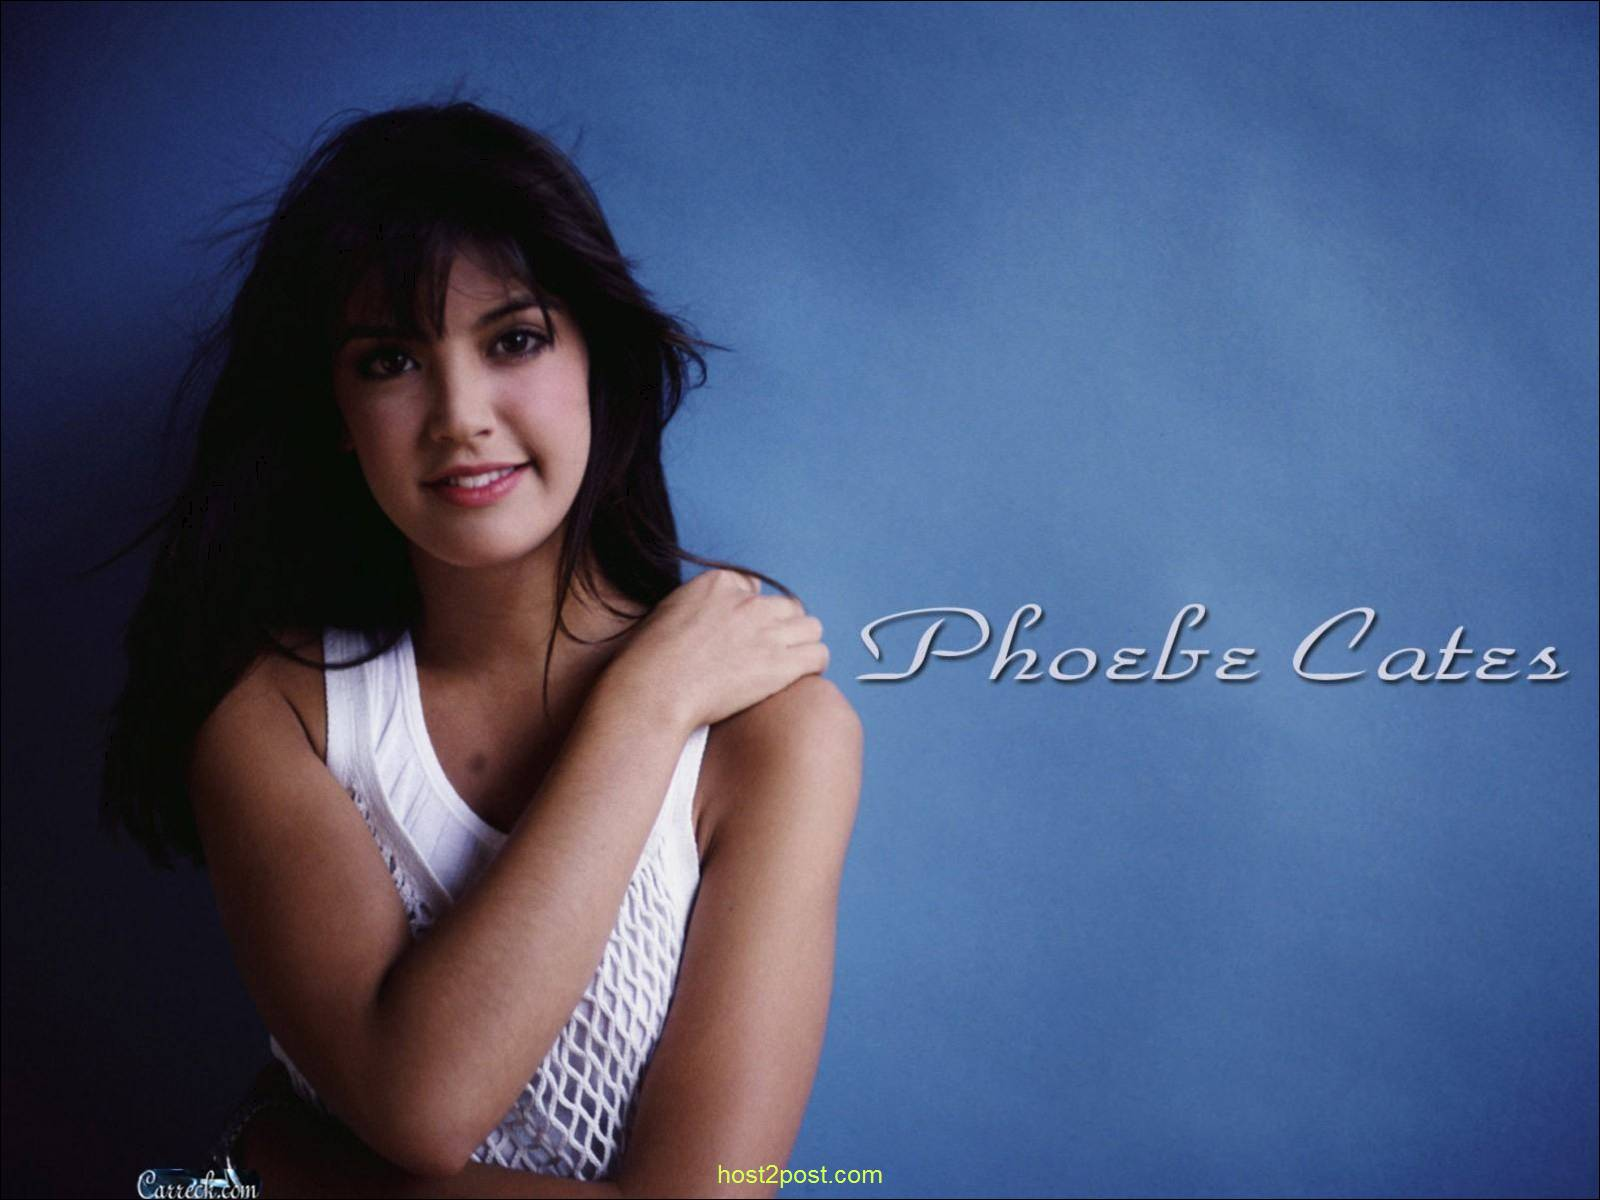 1600x1200 - Phoebe Cates Wallpapers 1